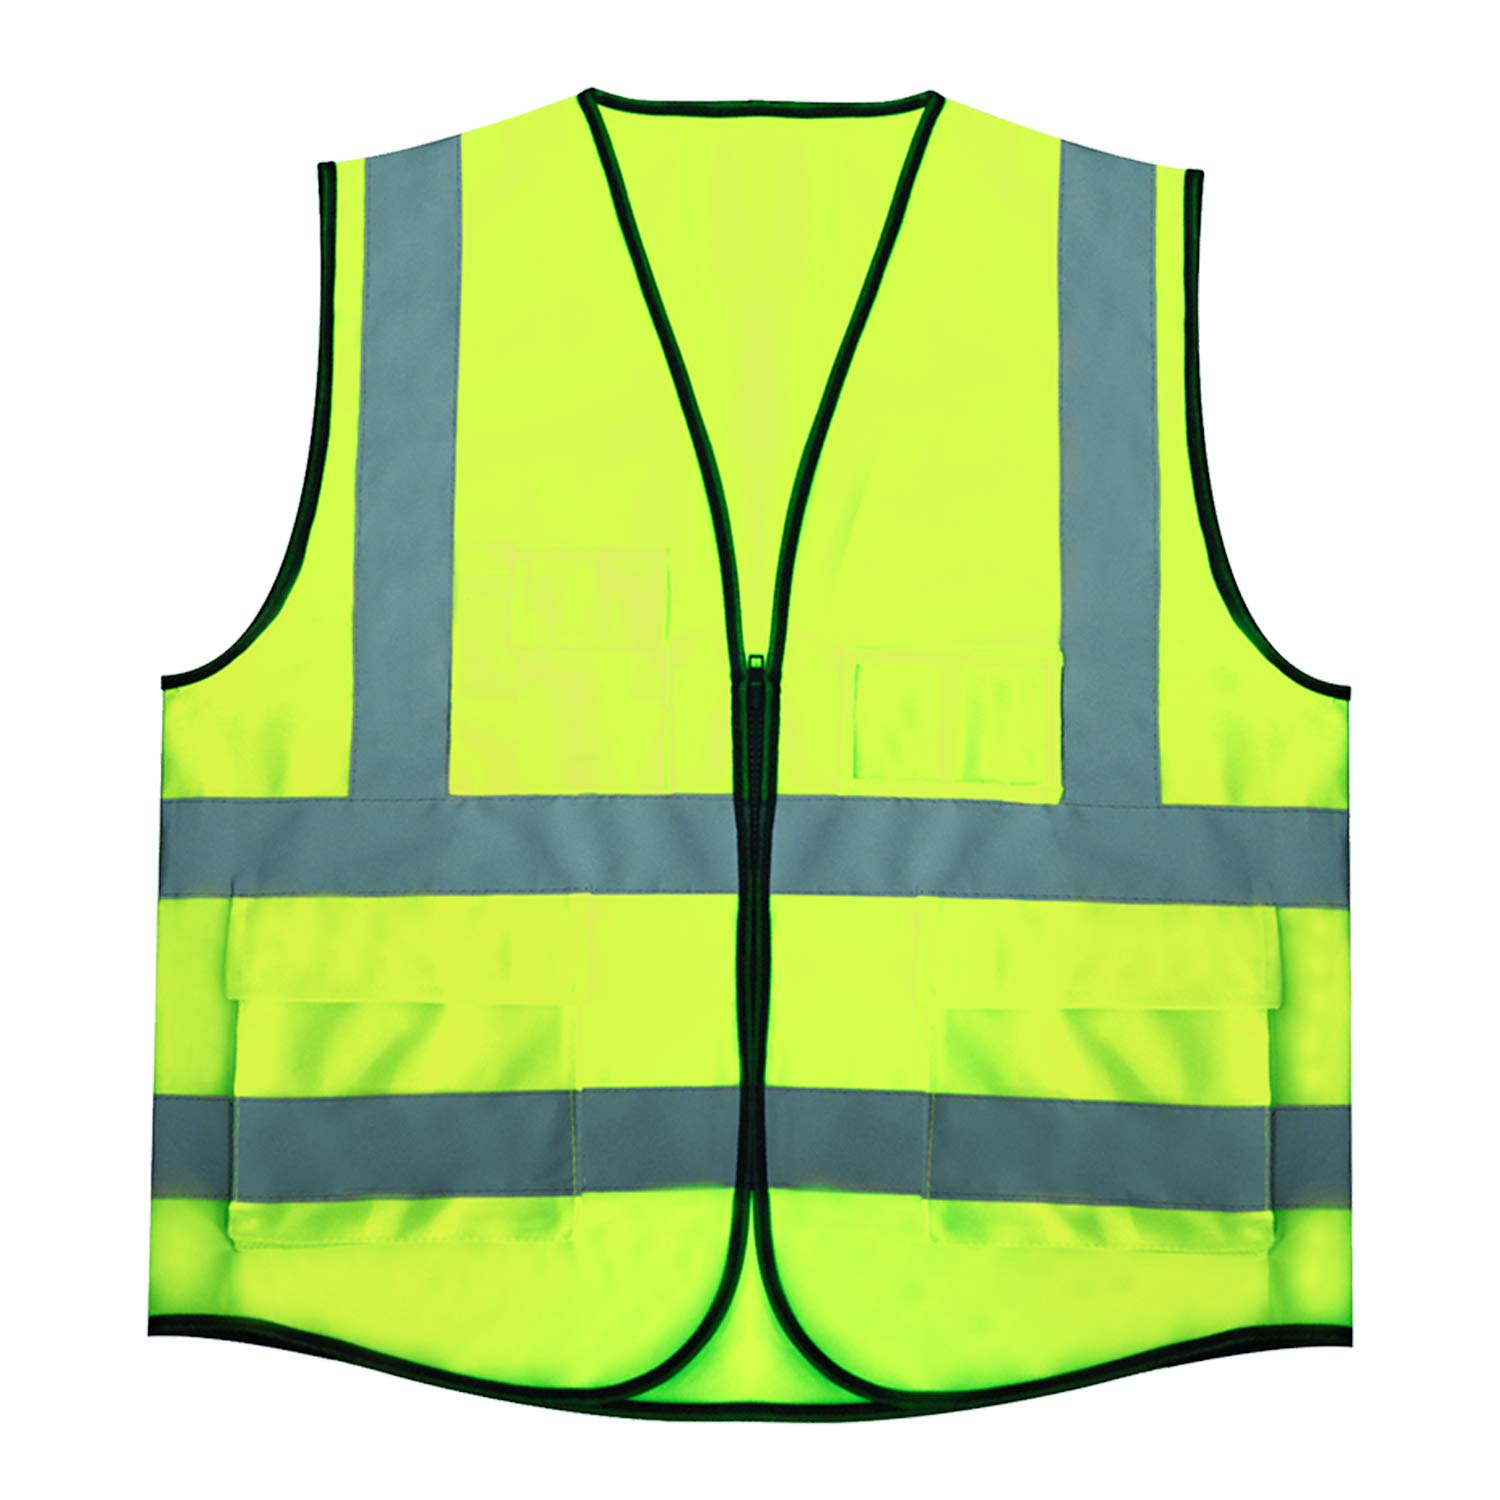 DJI Mavic Pro Holy Stone DBPOWER MJX Force1 Drone swee Drone Safety Reflective Vest with Commercial Drone Pilot Please Do Not Disturb,Compatible with DJI Inspire,DJI Phantom 3 4